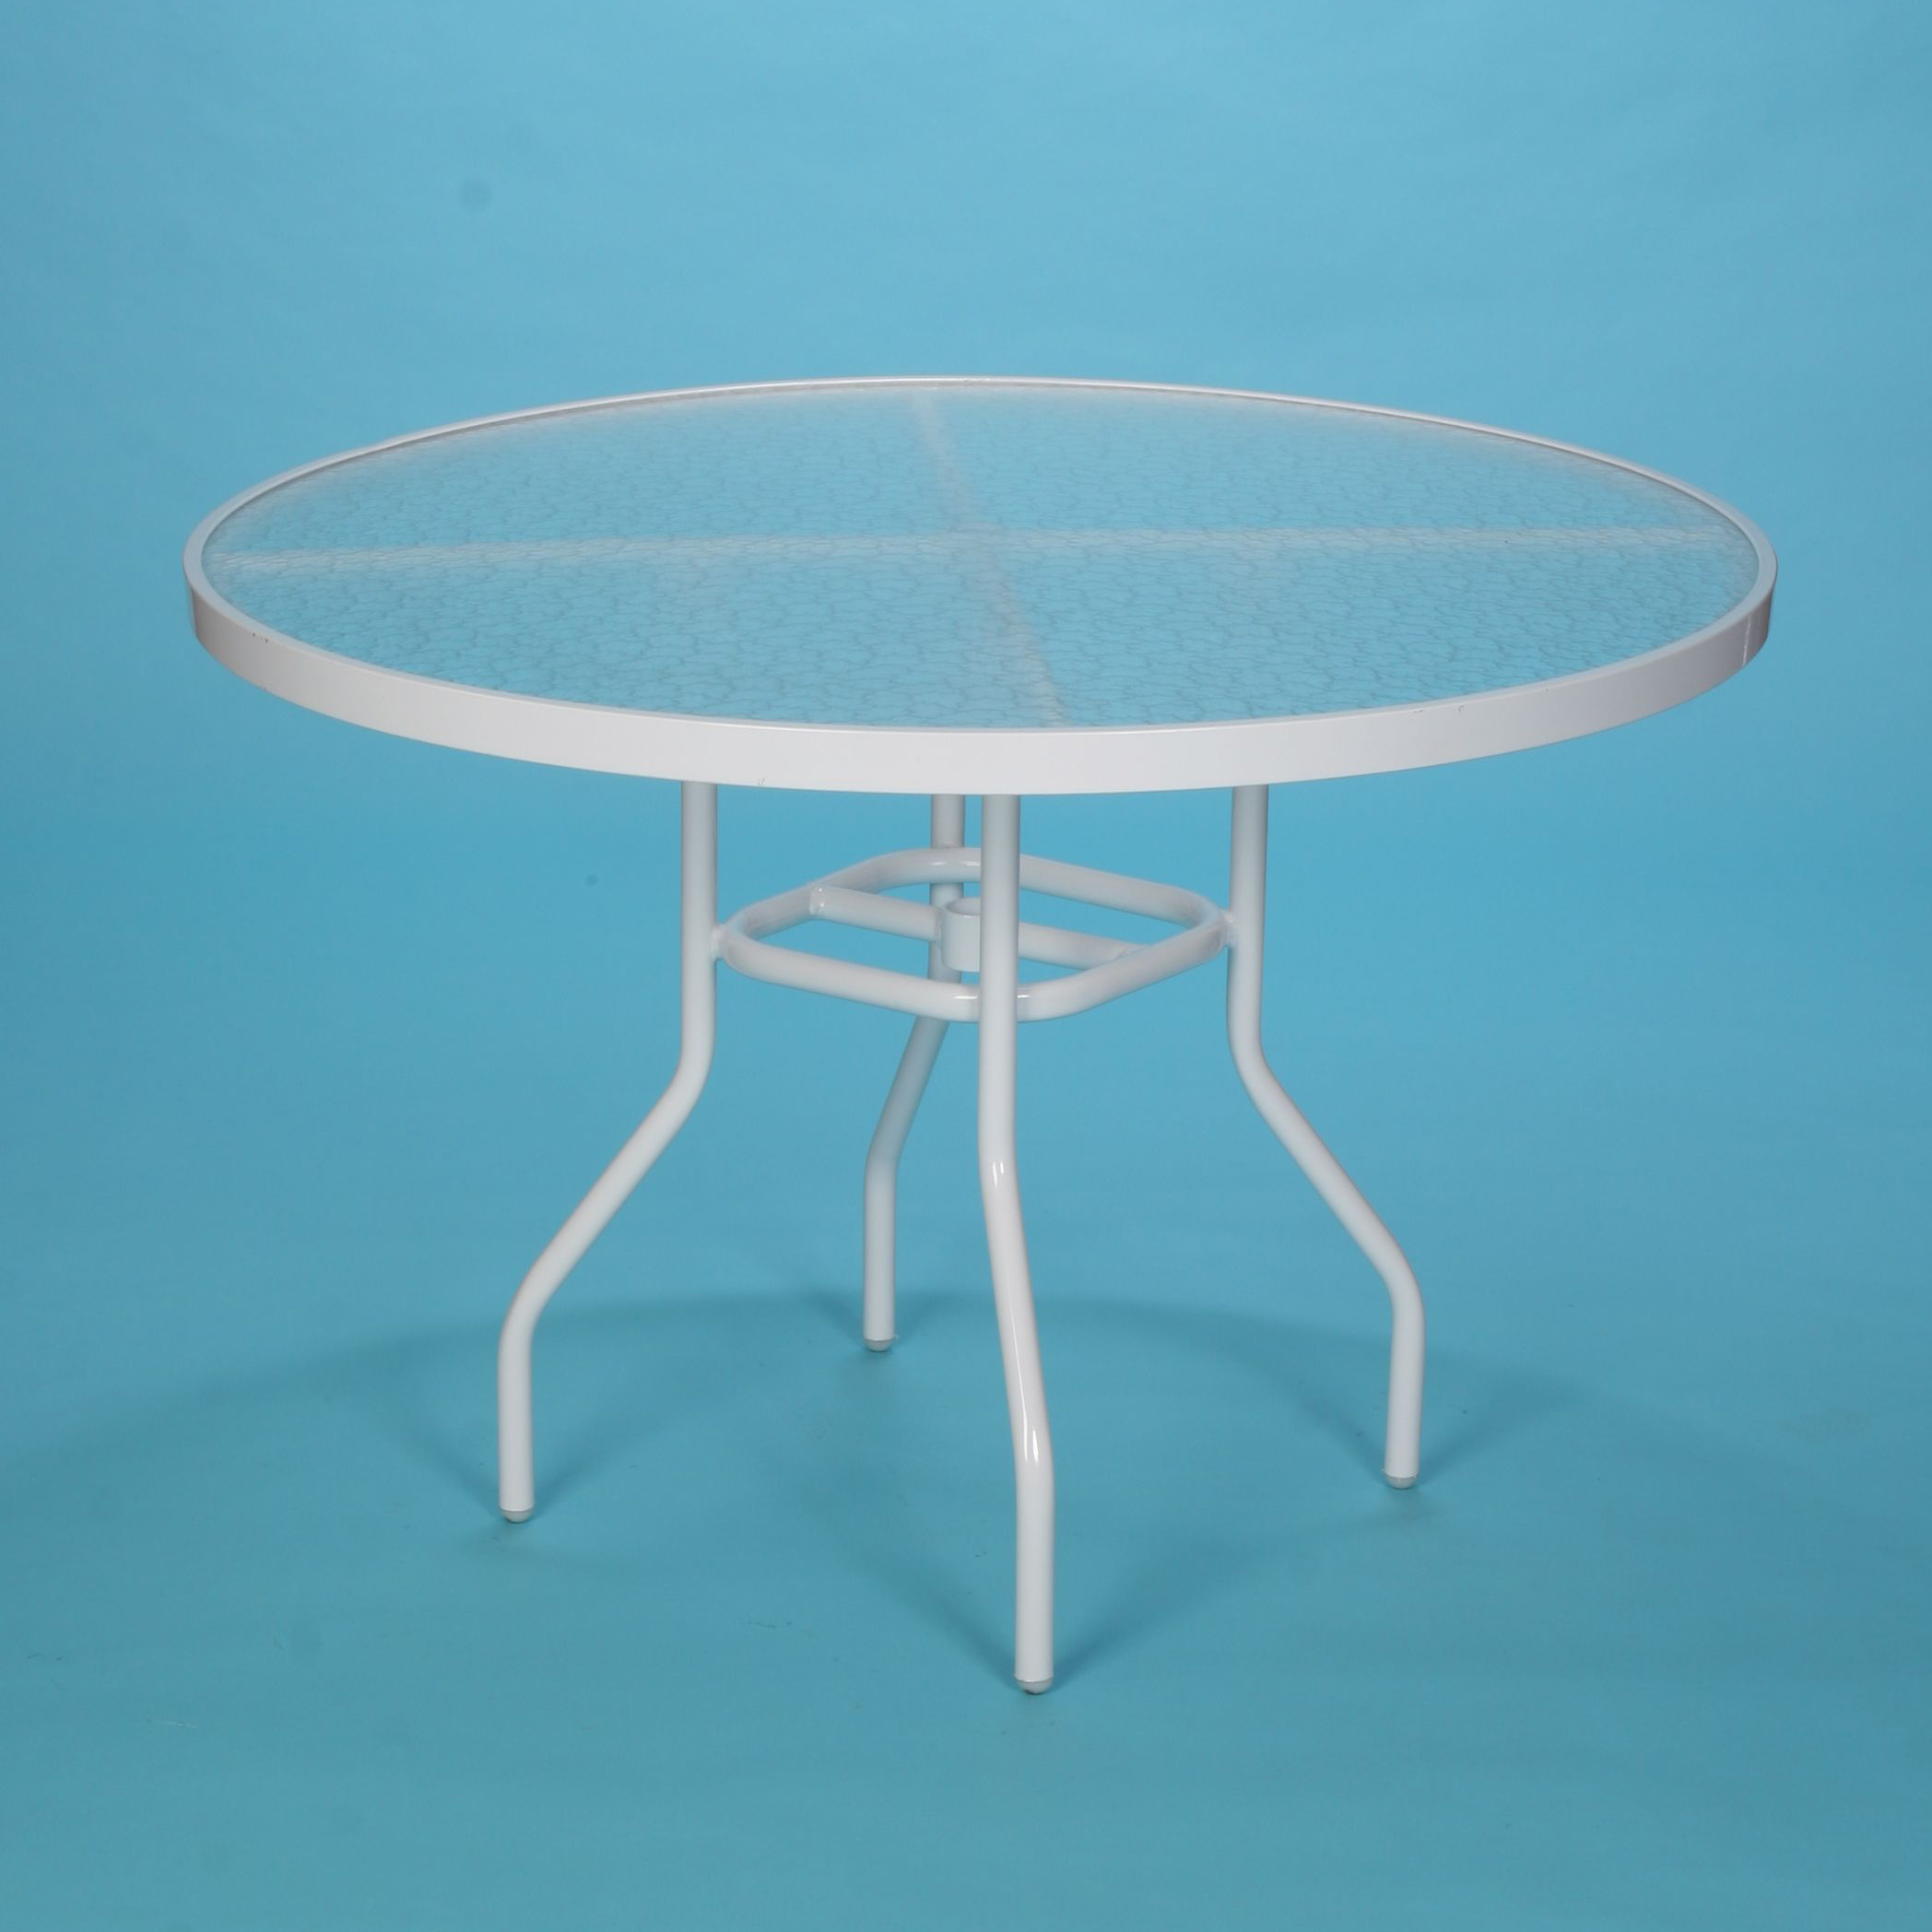 Round Acrylic Dining Table Image Collections